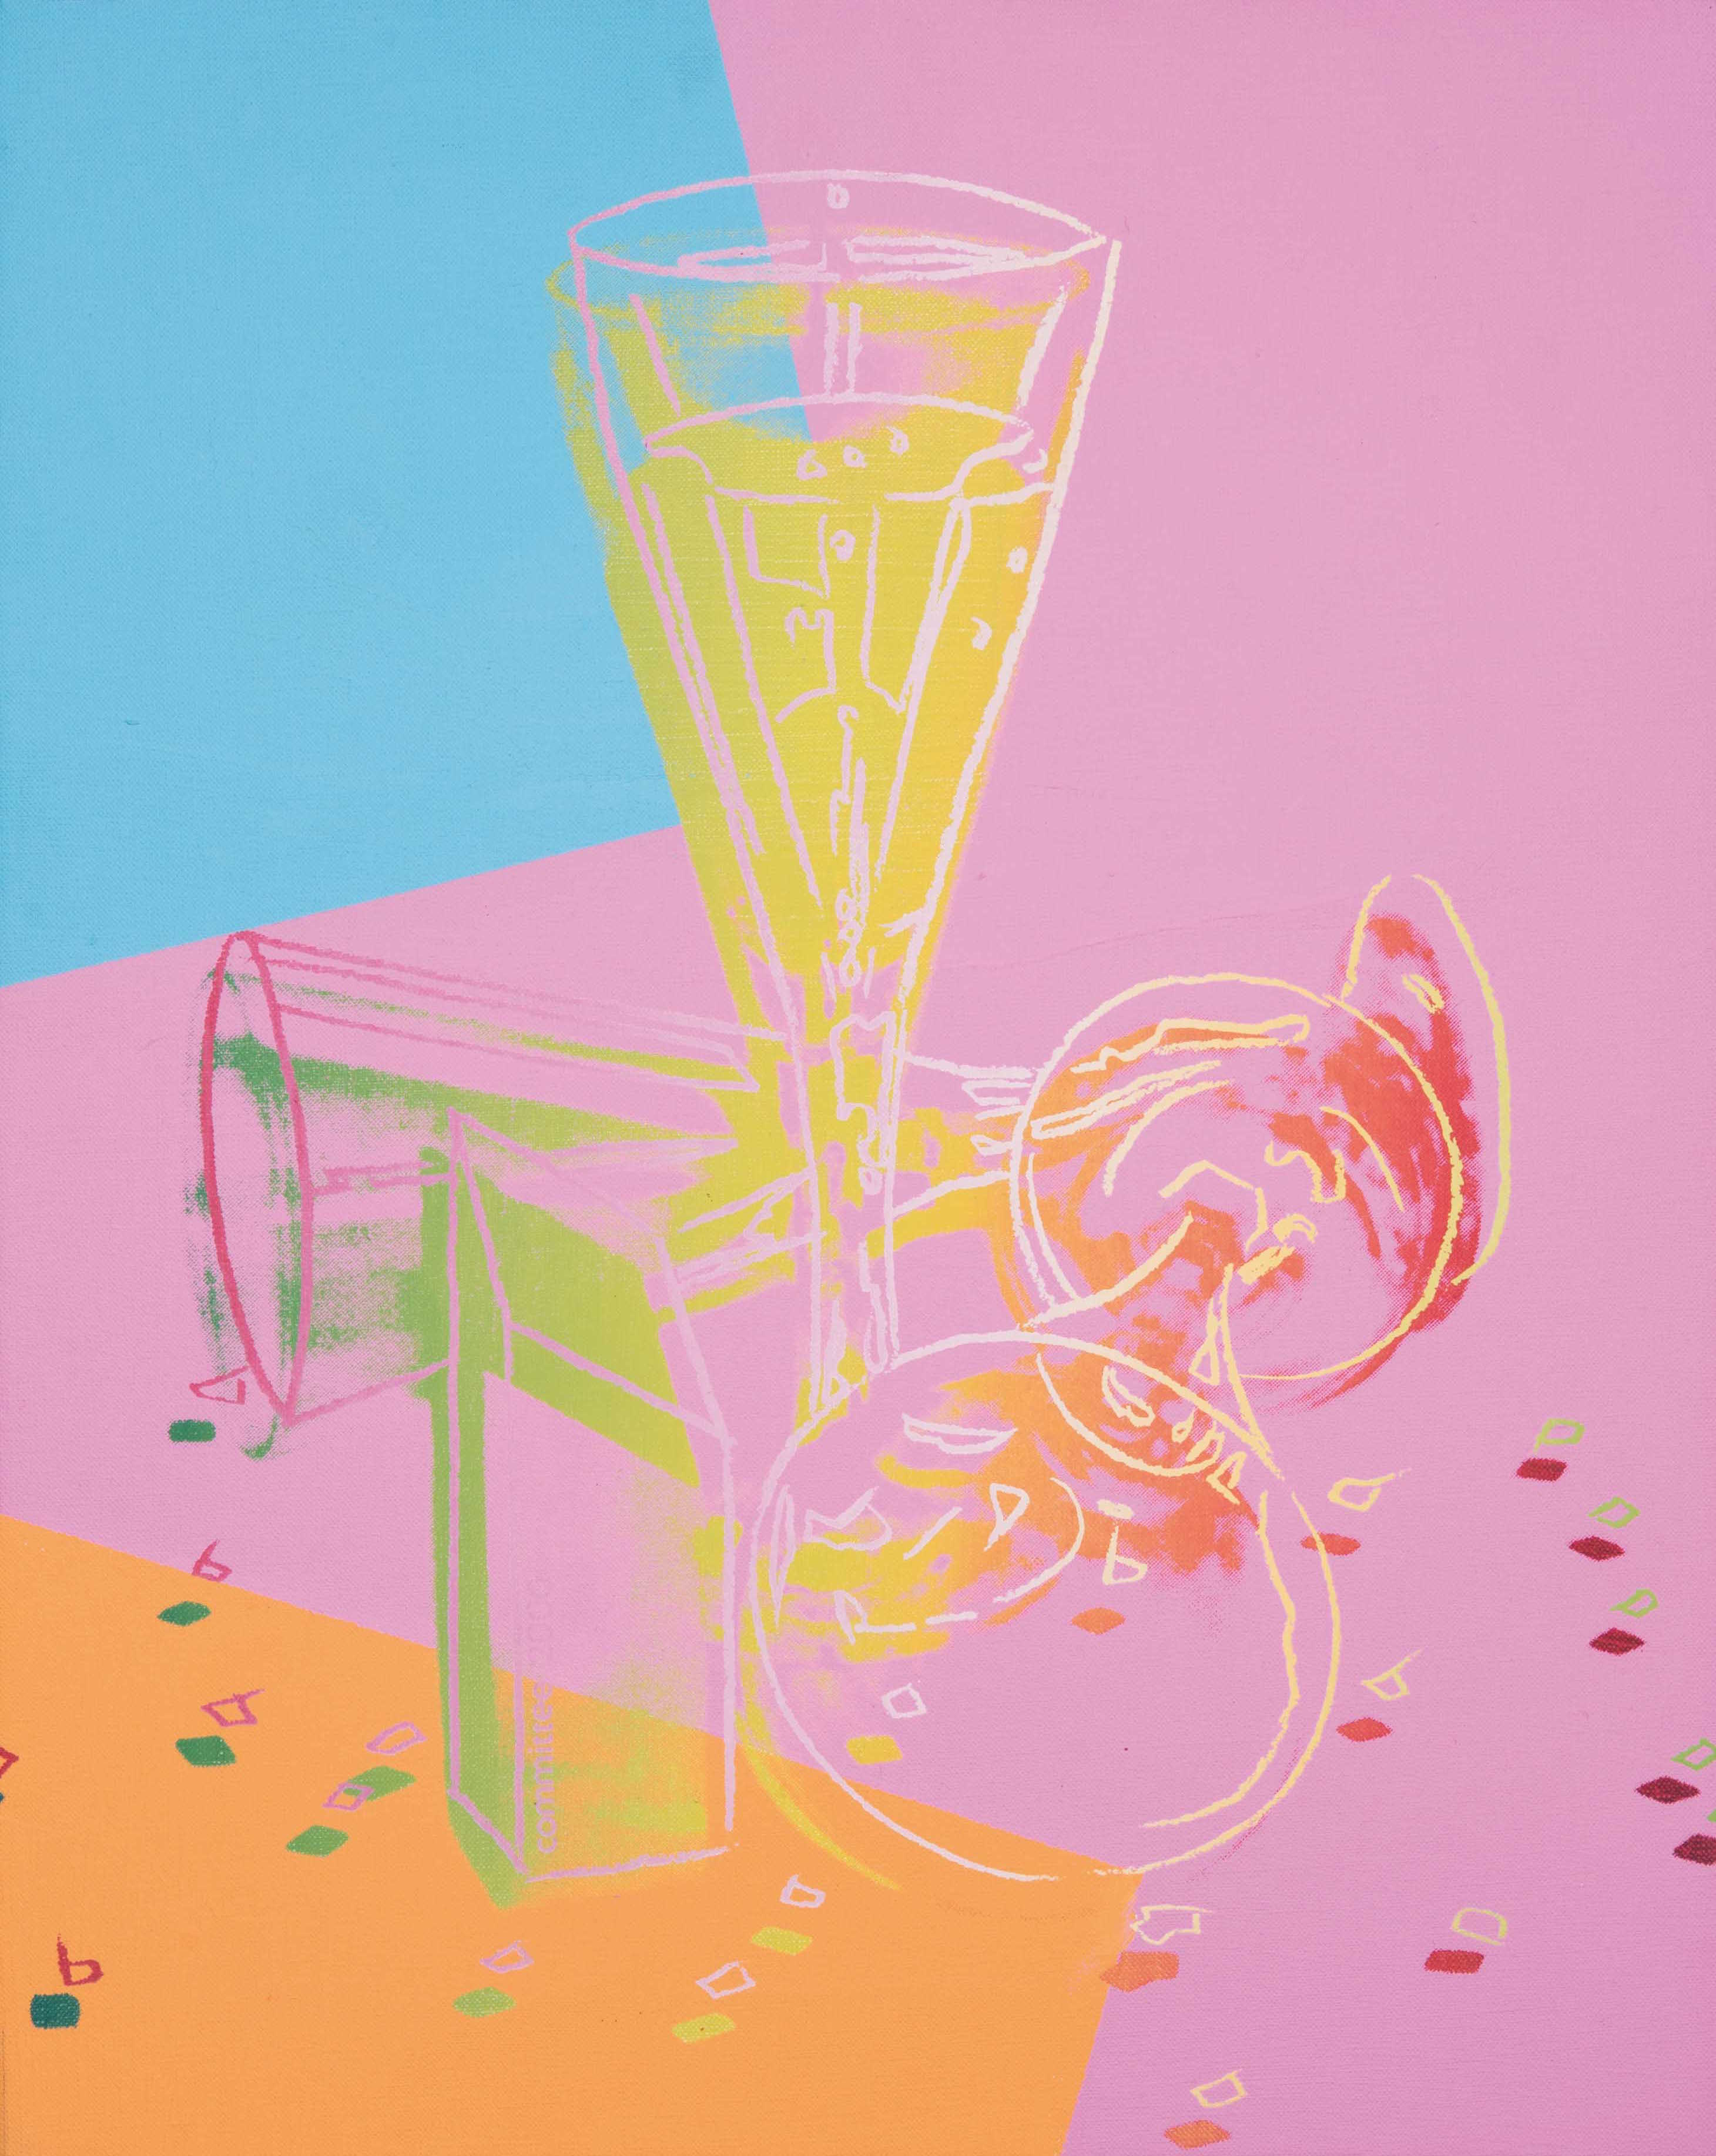 Andy Warhol, Committee 2000